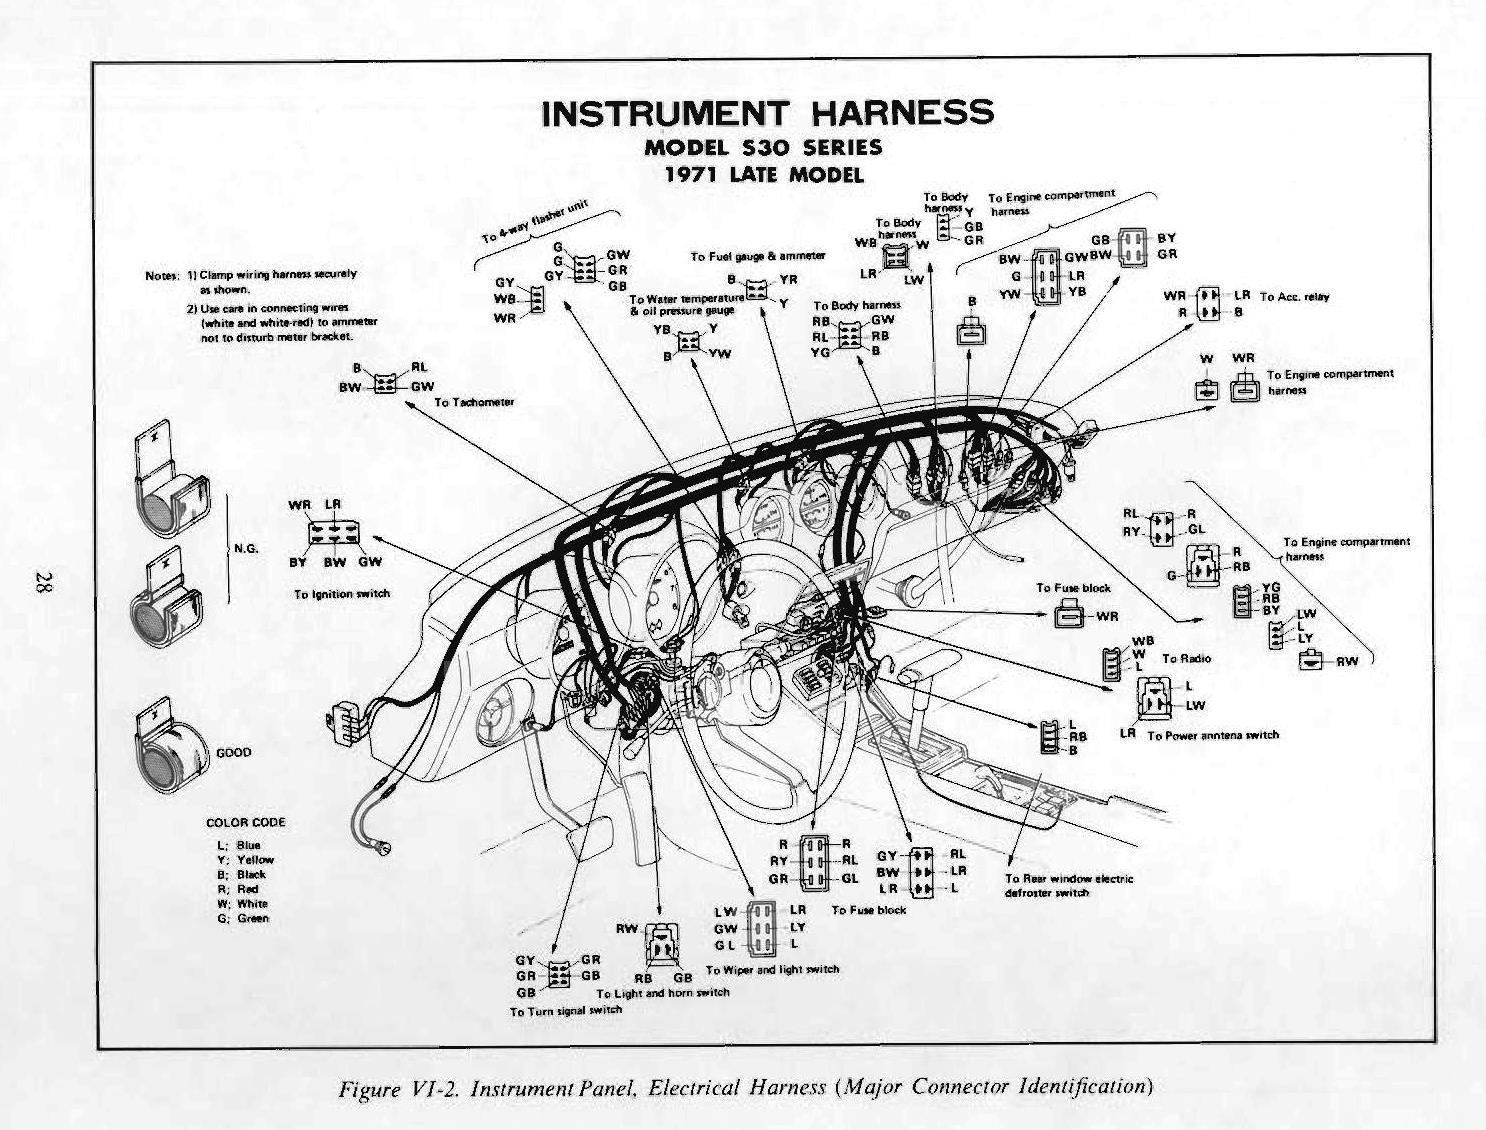 Painless Wiring Diagram on circuit diagram, distributor diagram, jeep 4.0 vacuum diagram, block diagram, basic car diagram, egr diagram, jet diagram, tbi diagram, small diagram, 1978 ford bronco dash diagram, math diagram, vintage air diagram, russell diagram, msd diagram, switch diagram, air lift diagram, xenon diagram, painless fuse block, 3 wire alternator diagram, animal diagram,